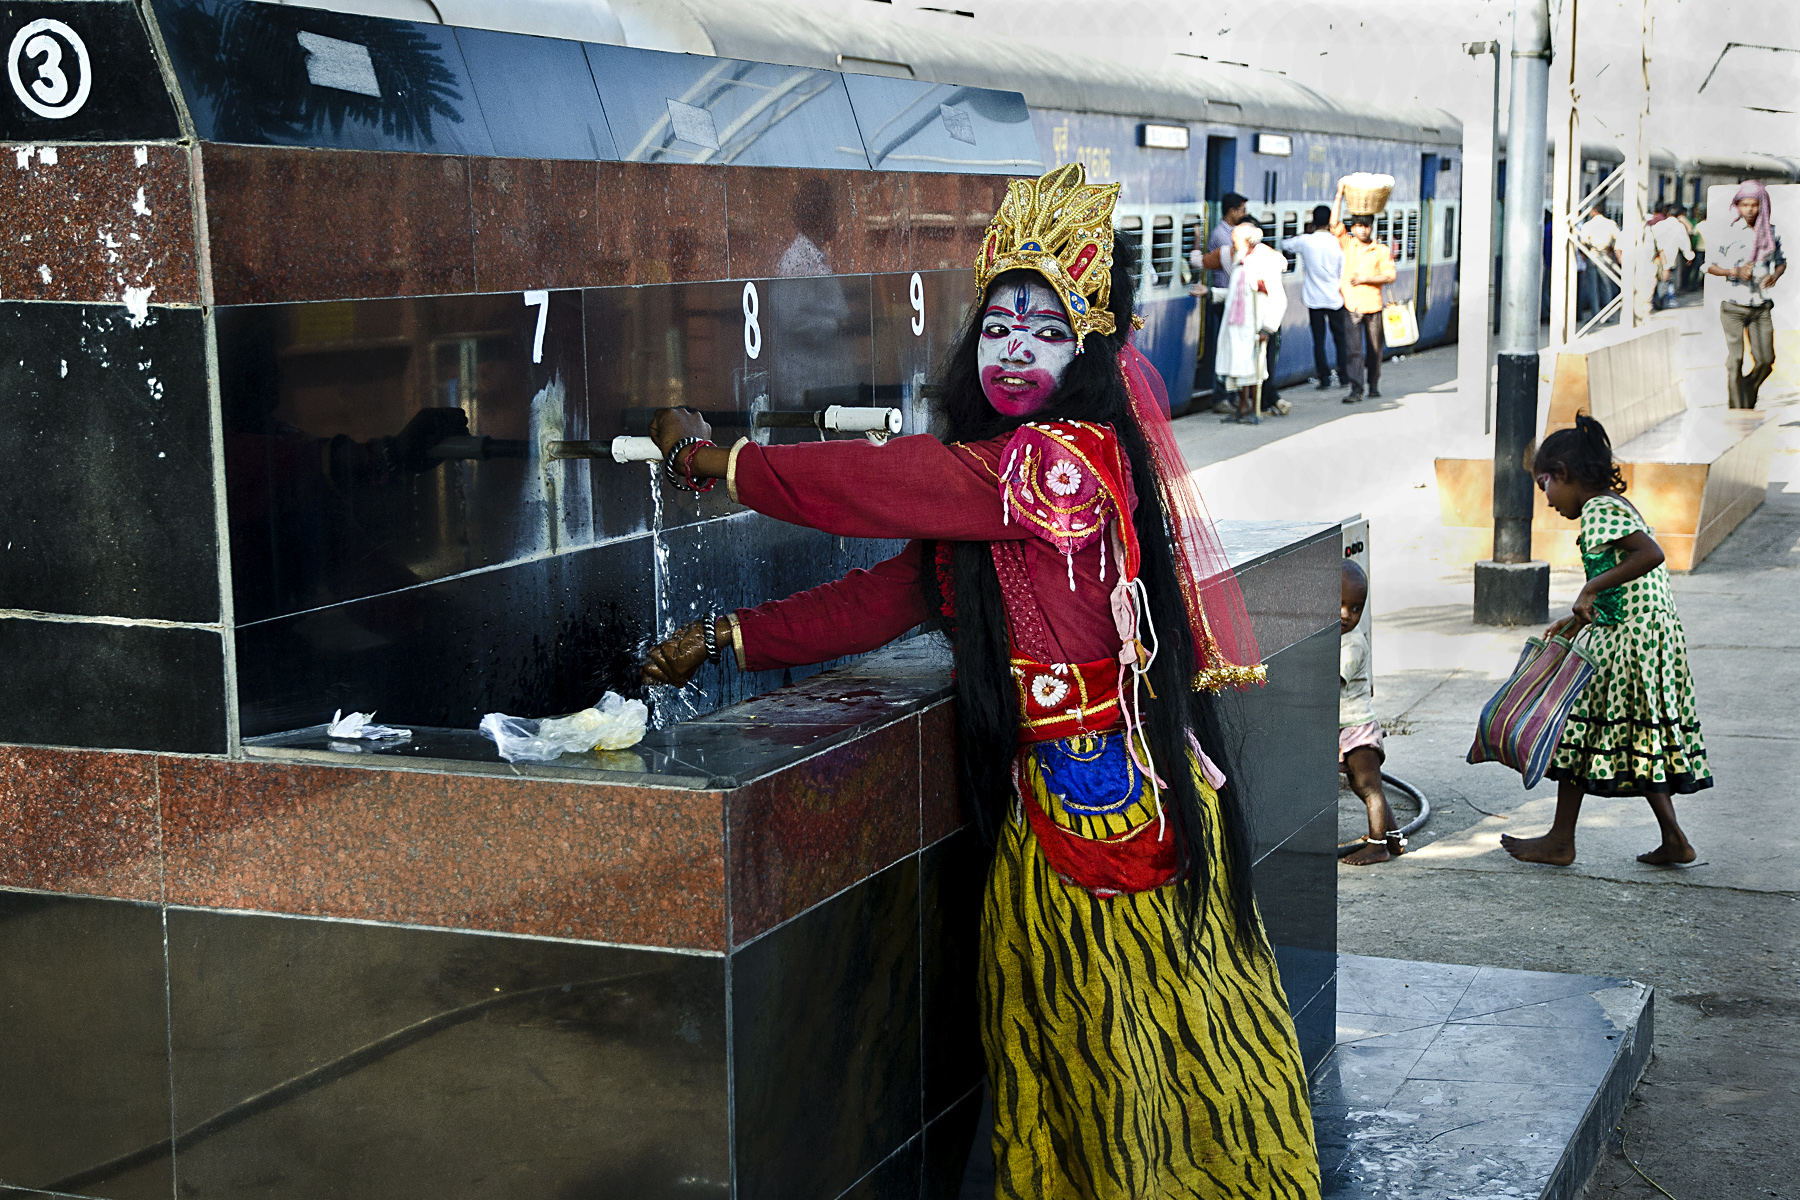 That girl make herself as goddess kali and collecting money from the tourist.